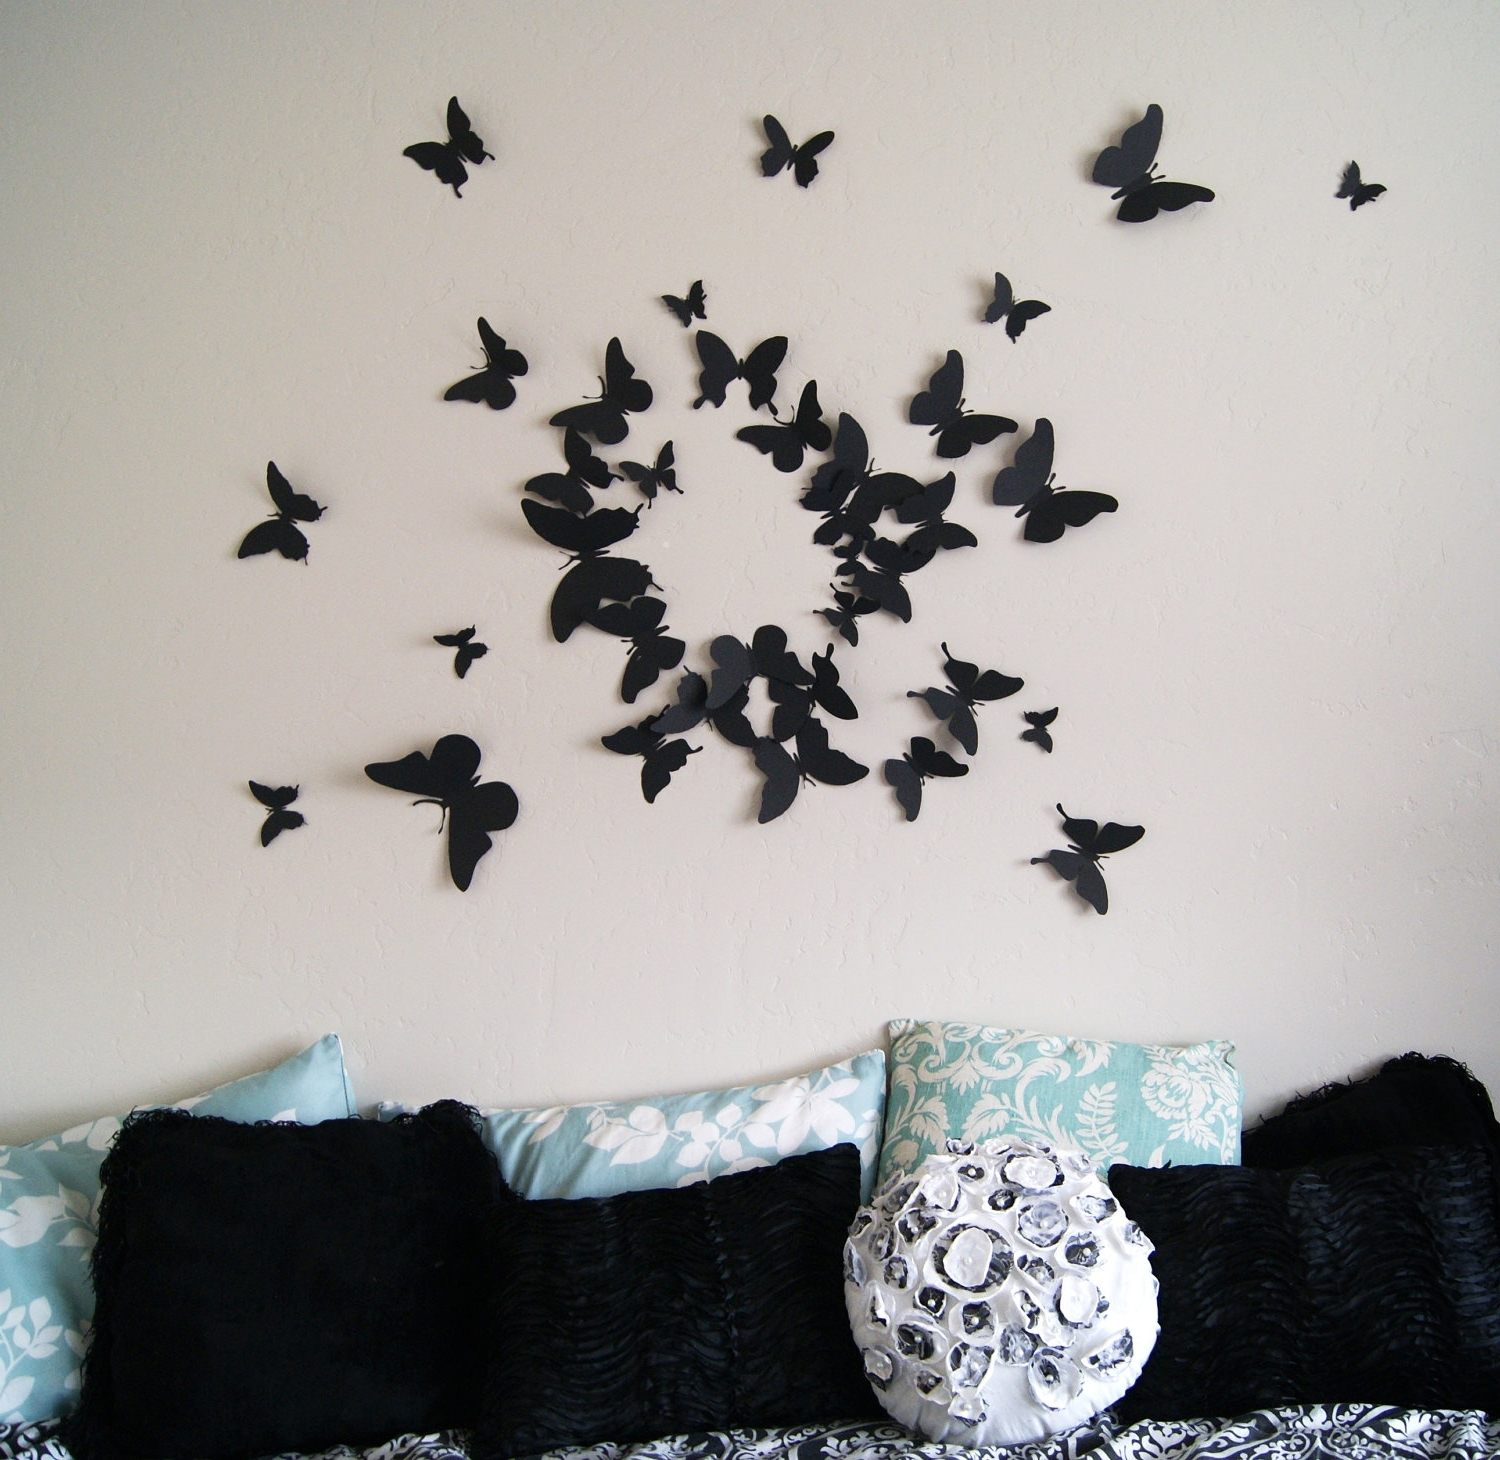 Free Us Shipping 40 3D Butterfly Wall Art Circle Burstleeshay With Fashionable 3D Wall Art For Bedrooms (View 10 of 15)